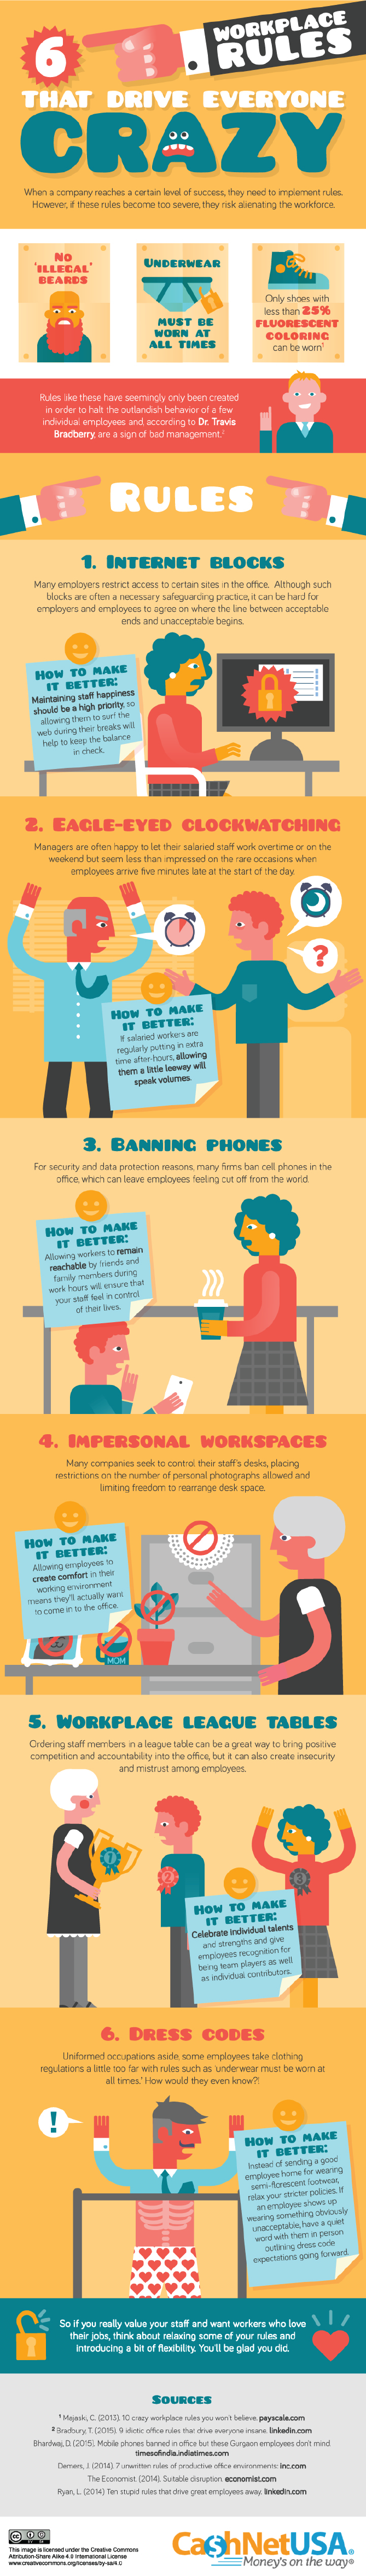 6-workplace-rules-that-drive-everyone-crazy.png